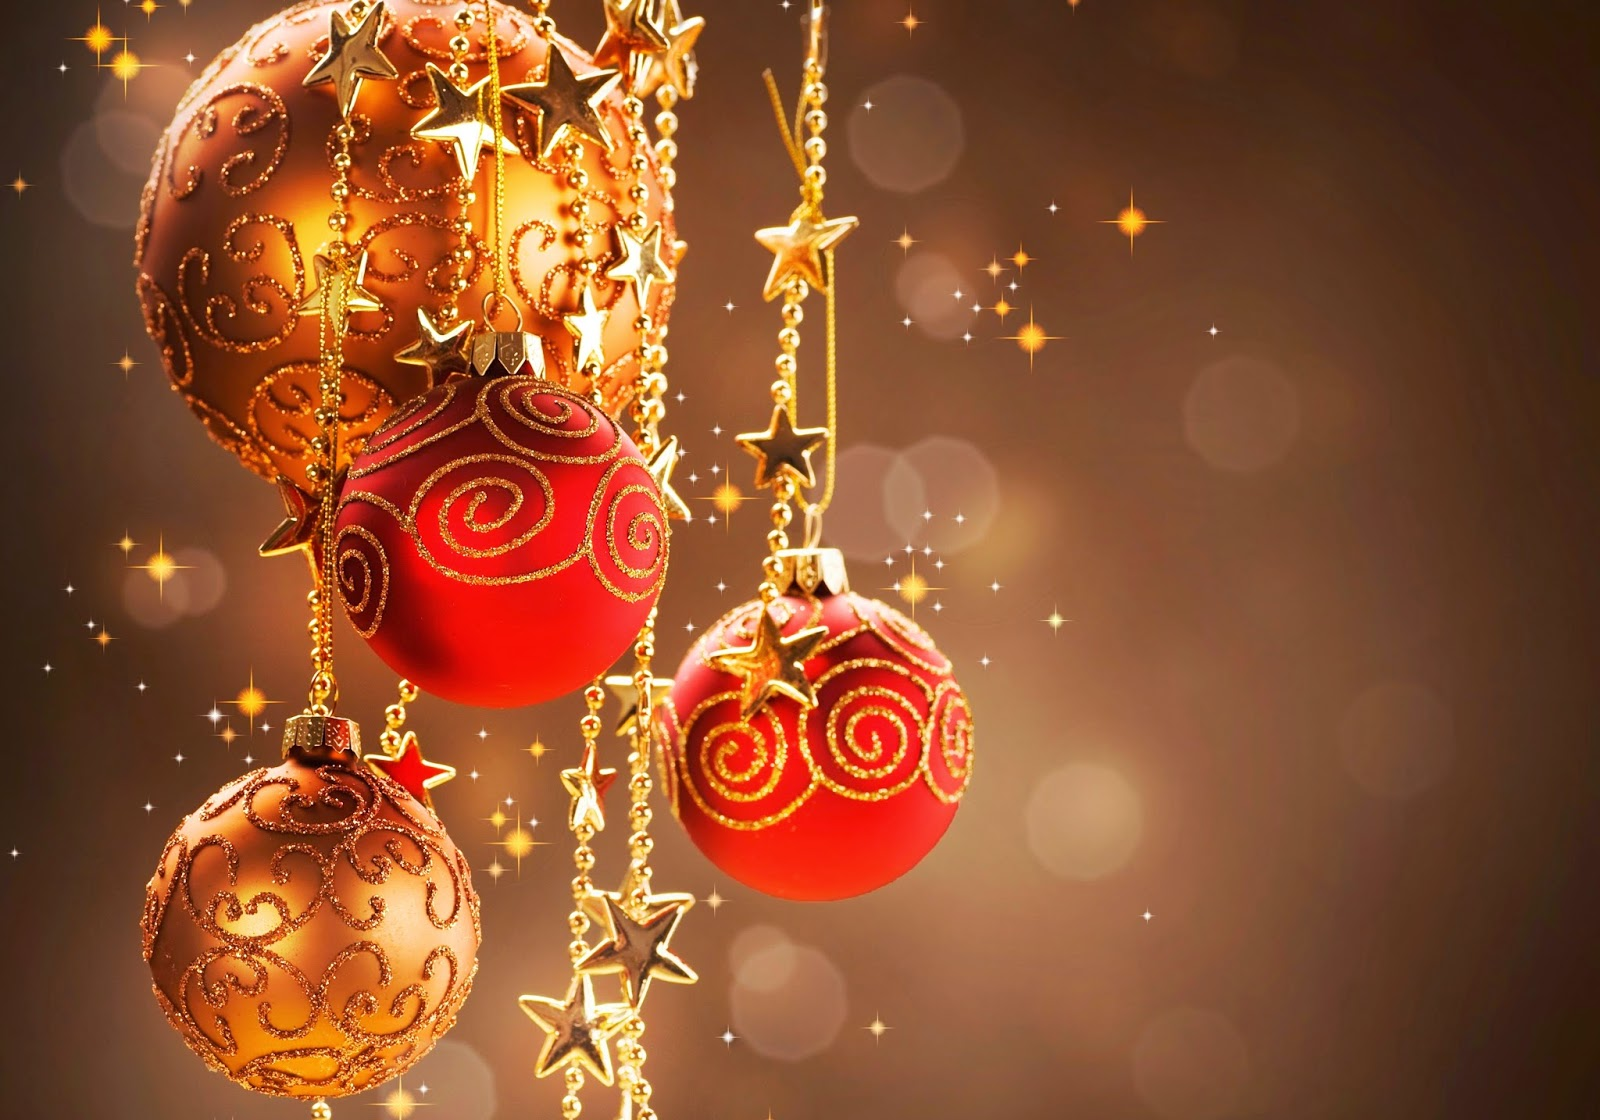 red-and-golden-design-Christmas-baubles-balls-rich-look-wallpaper-HD-image.jpg